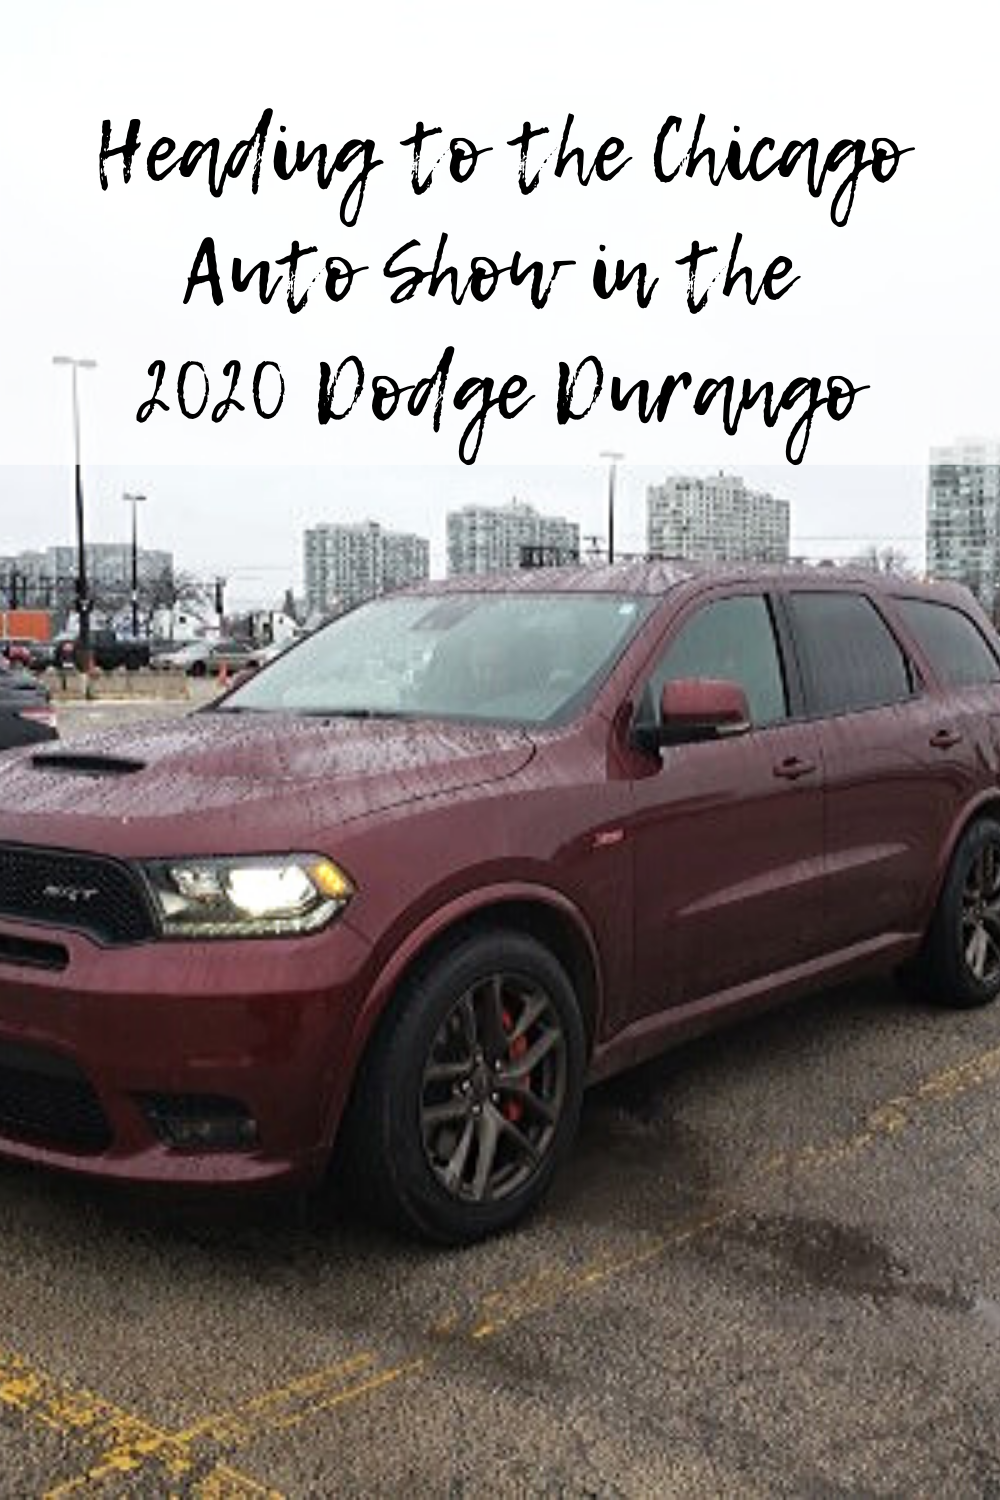 Heading to the Chicago Auto Show in the 2020 Dodge Durango